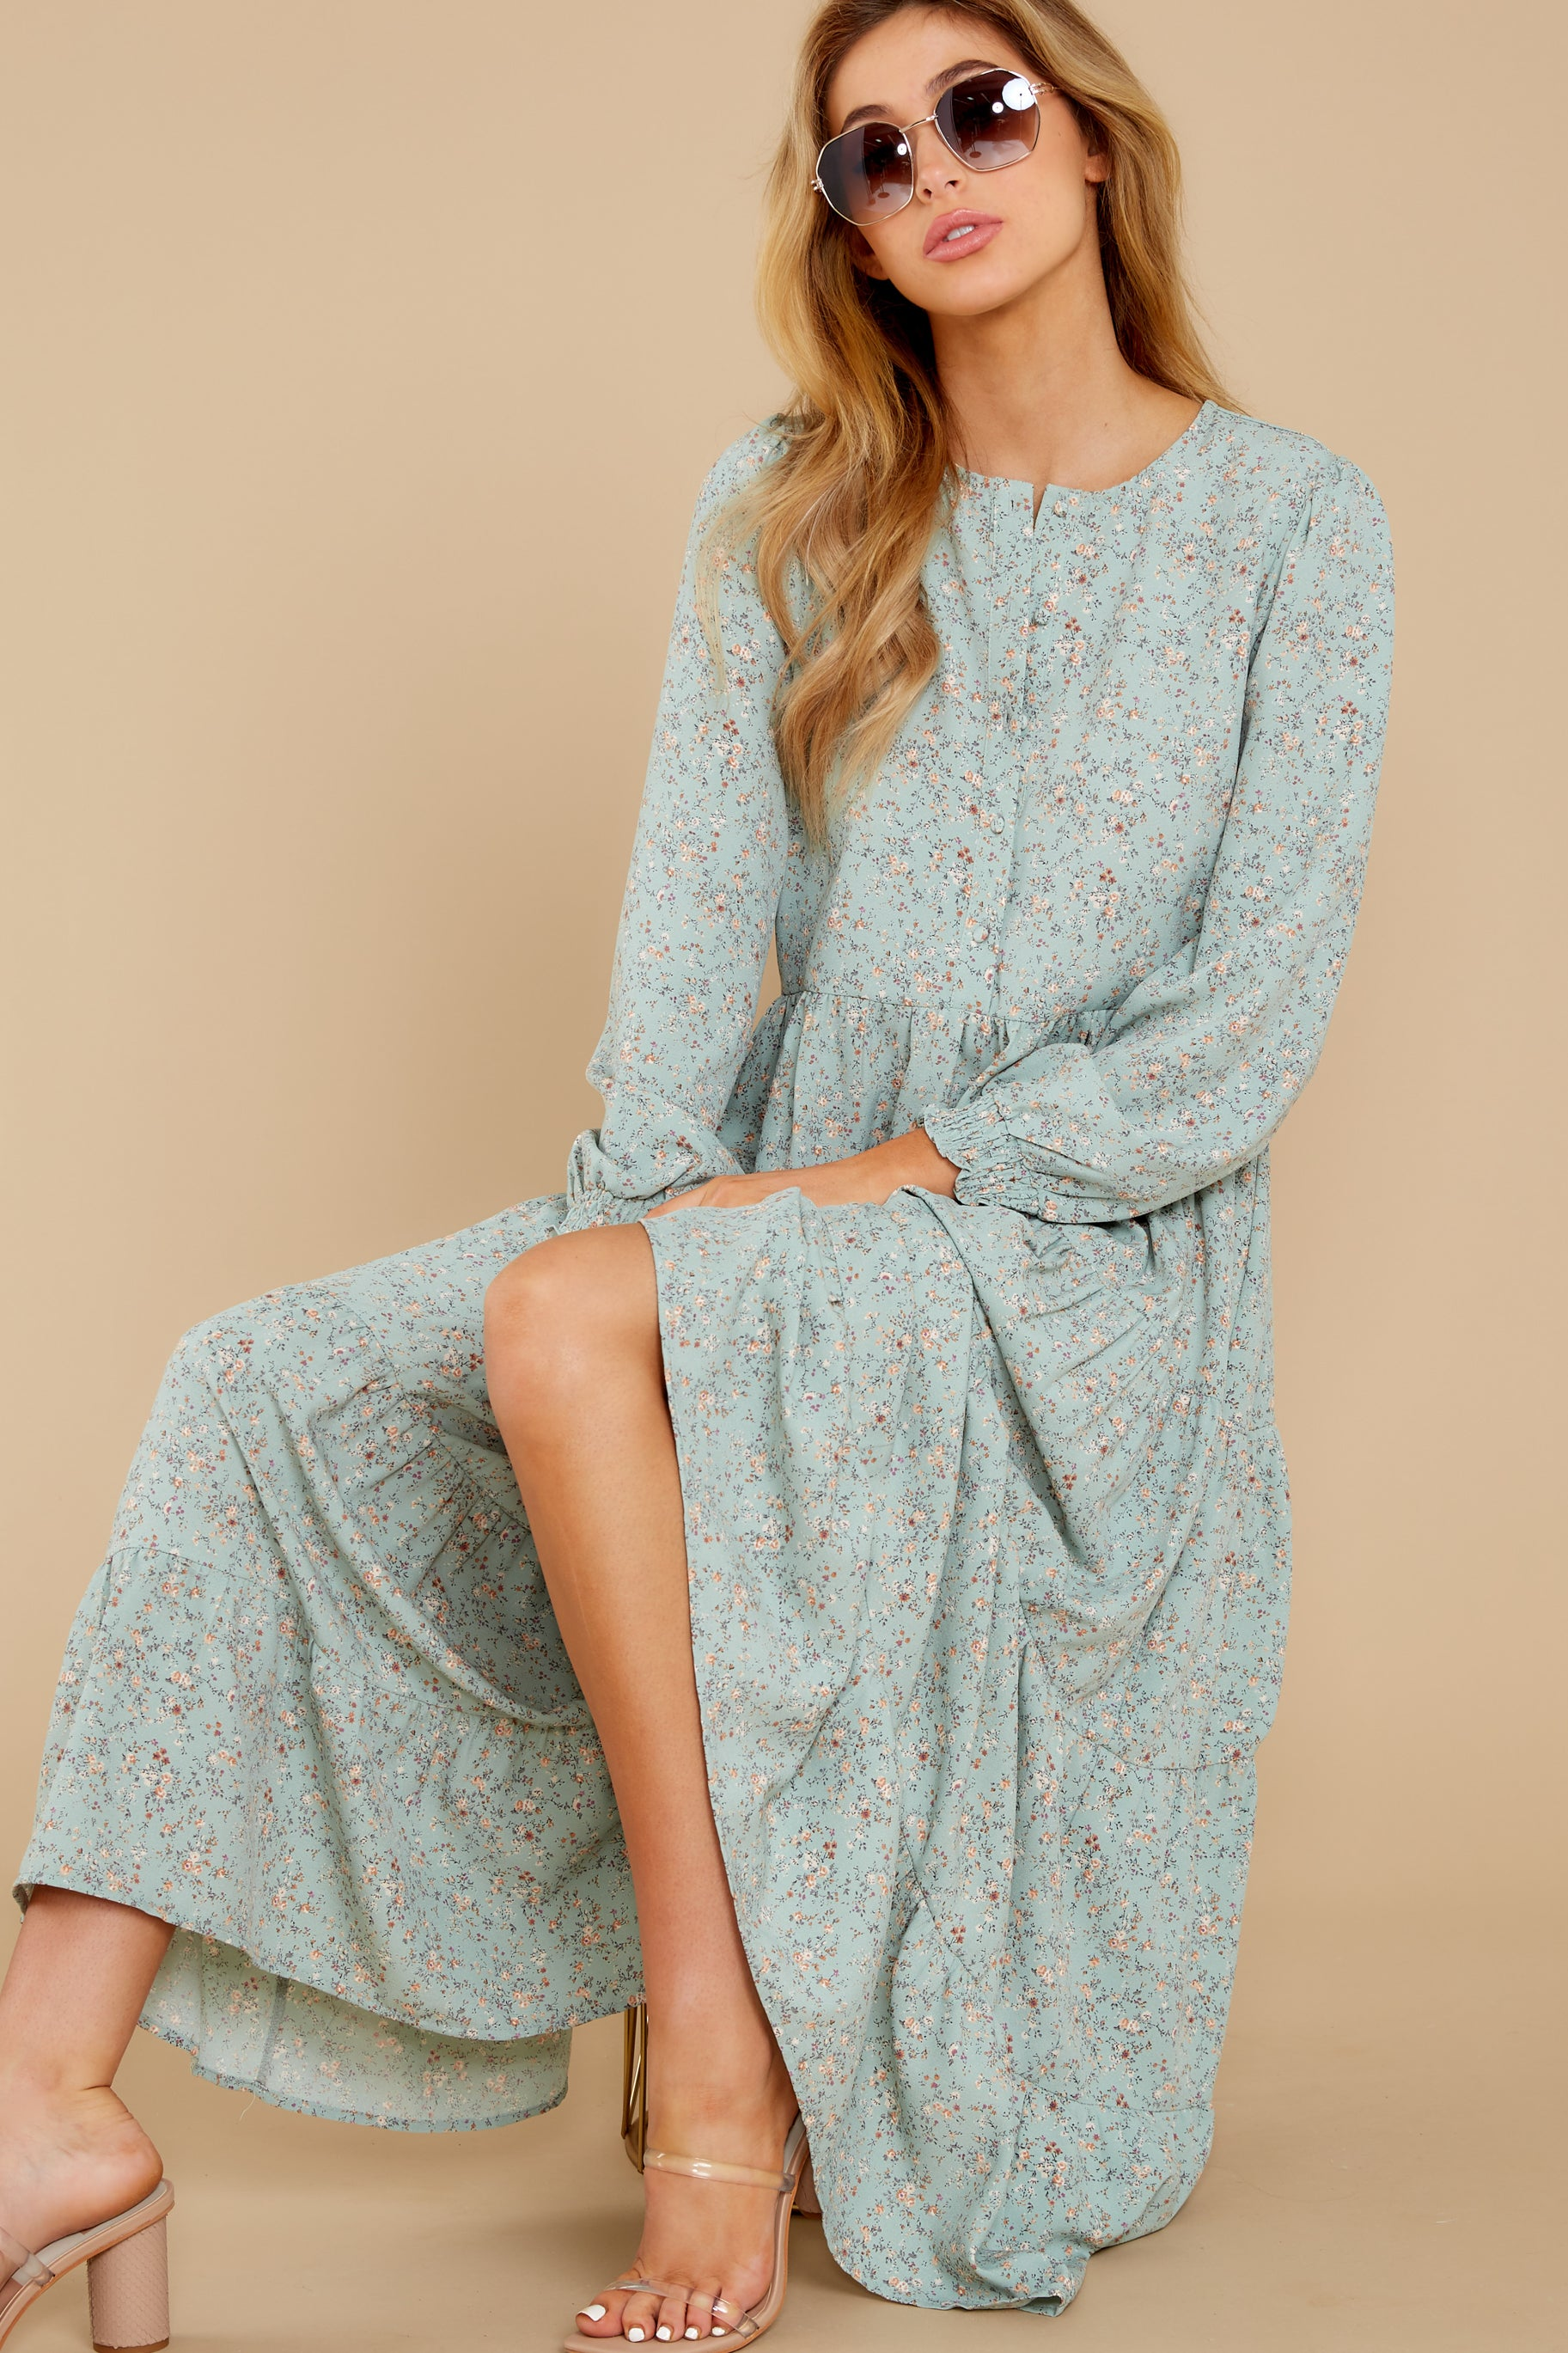 In The Air Mint Floral Print Midi Dress